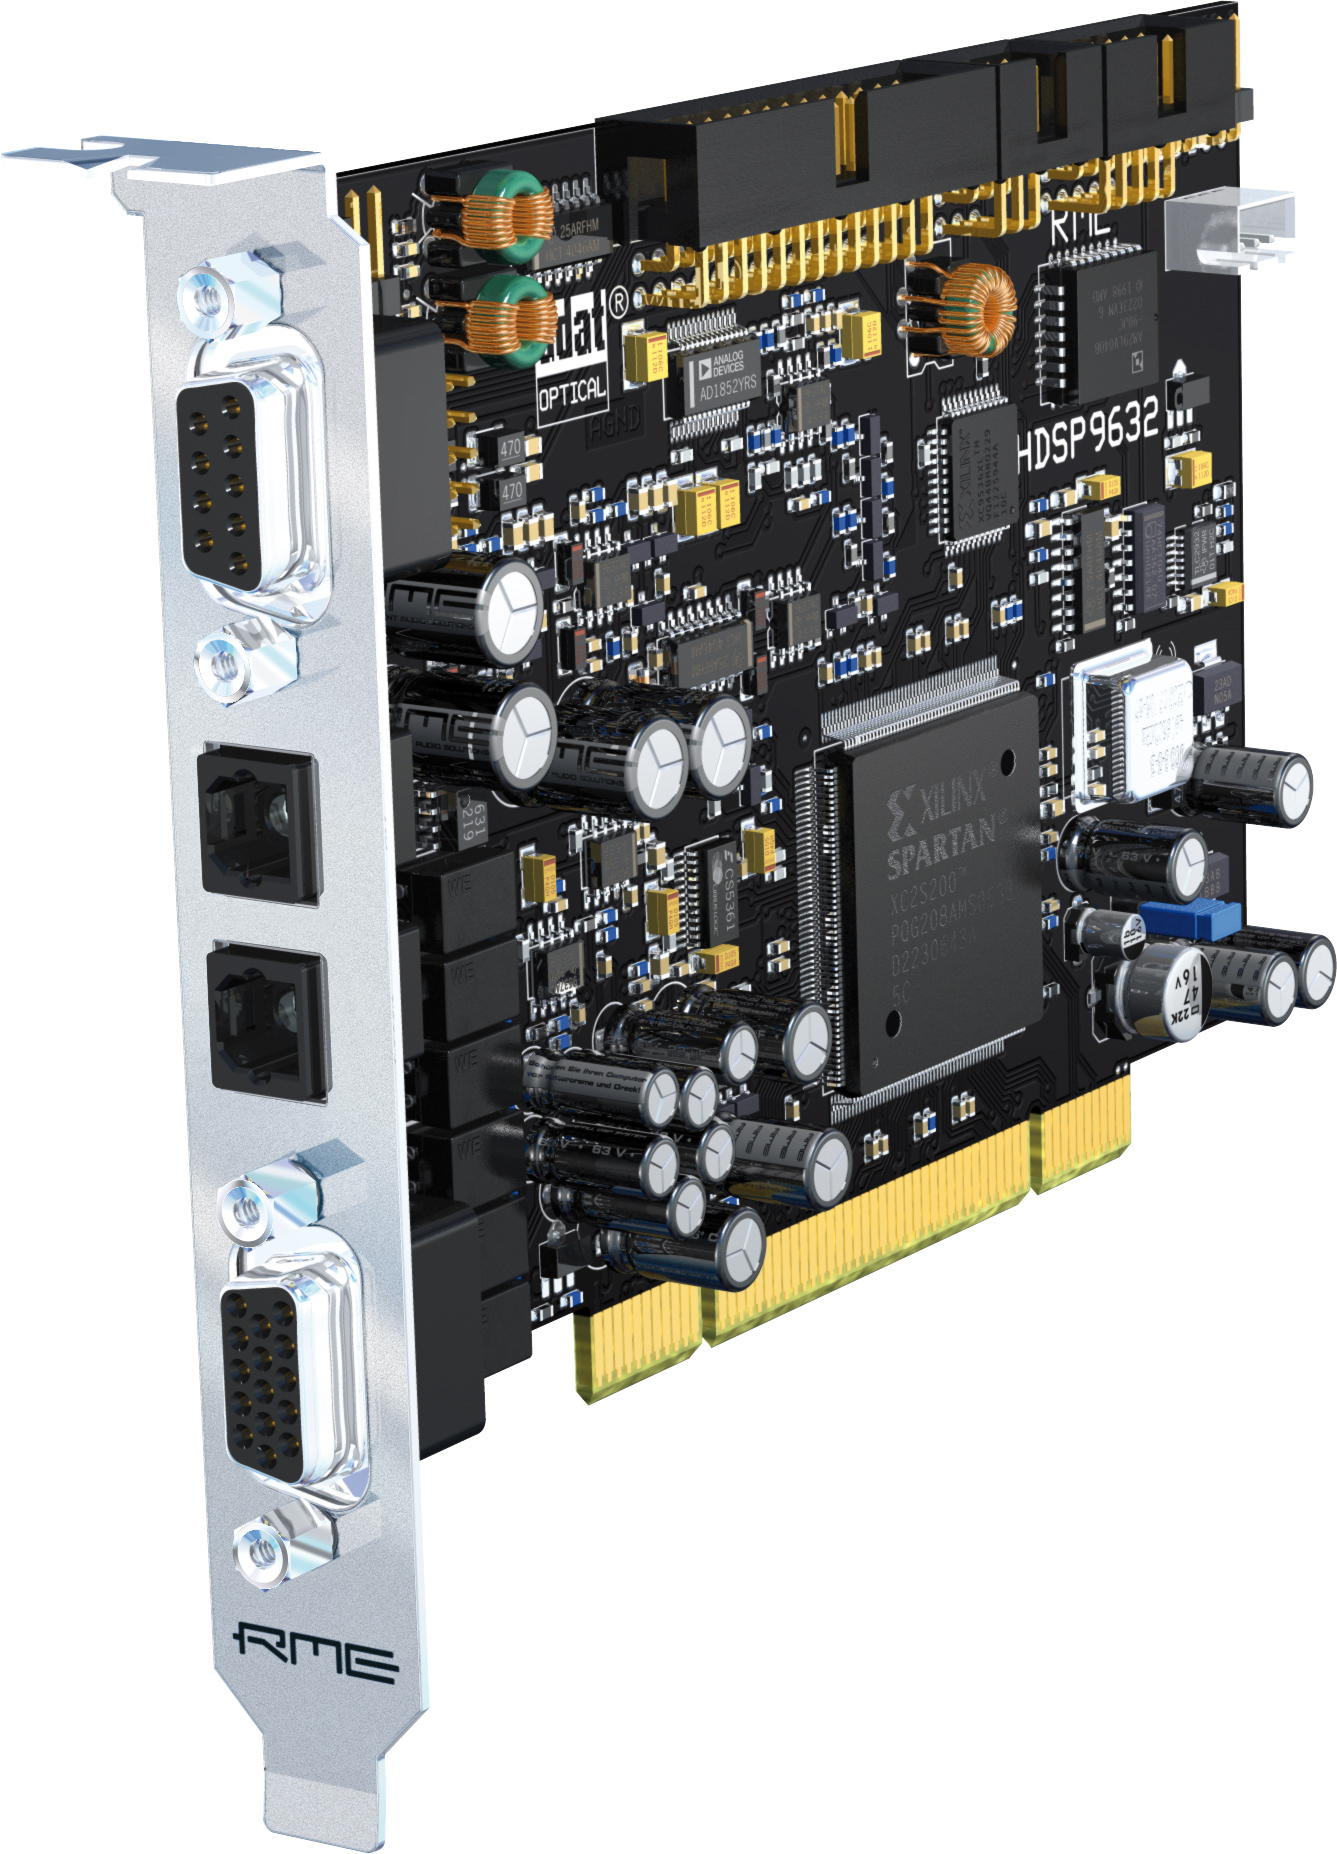 DRIVERS FOR RME HDSP 9632